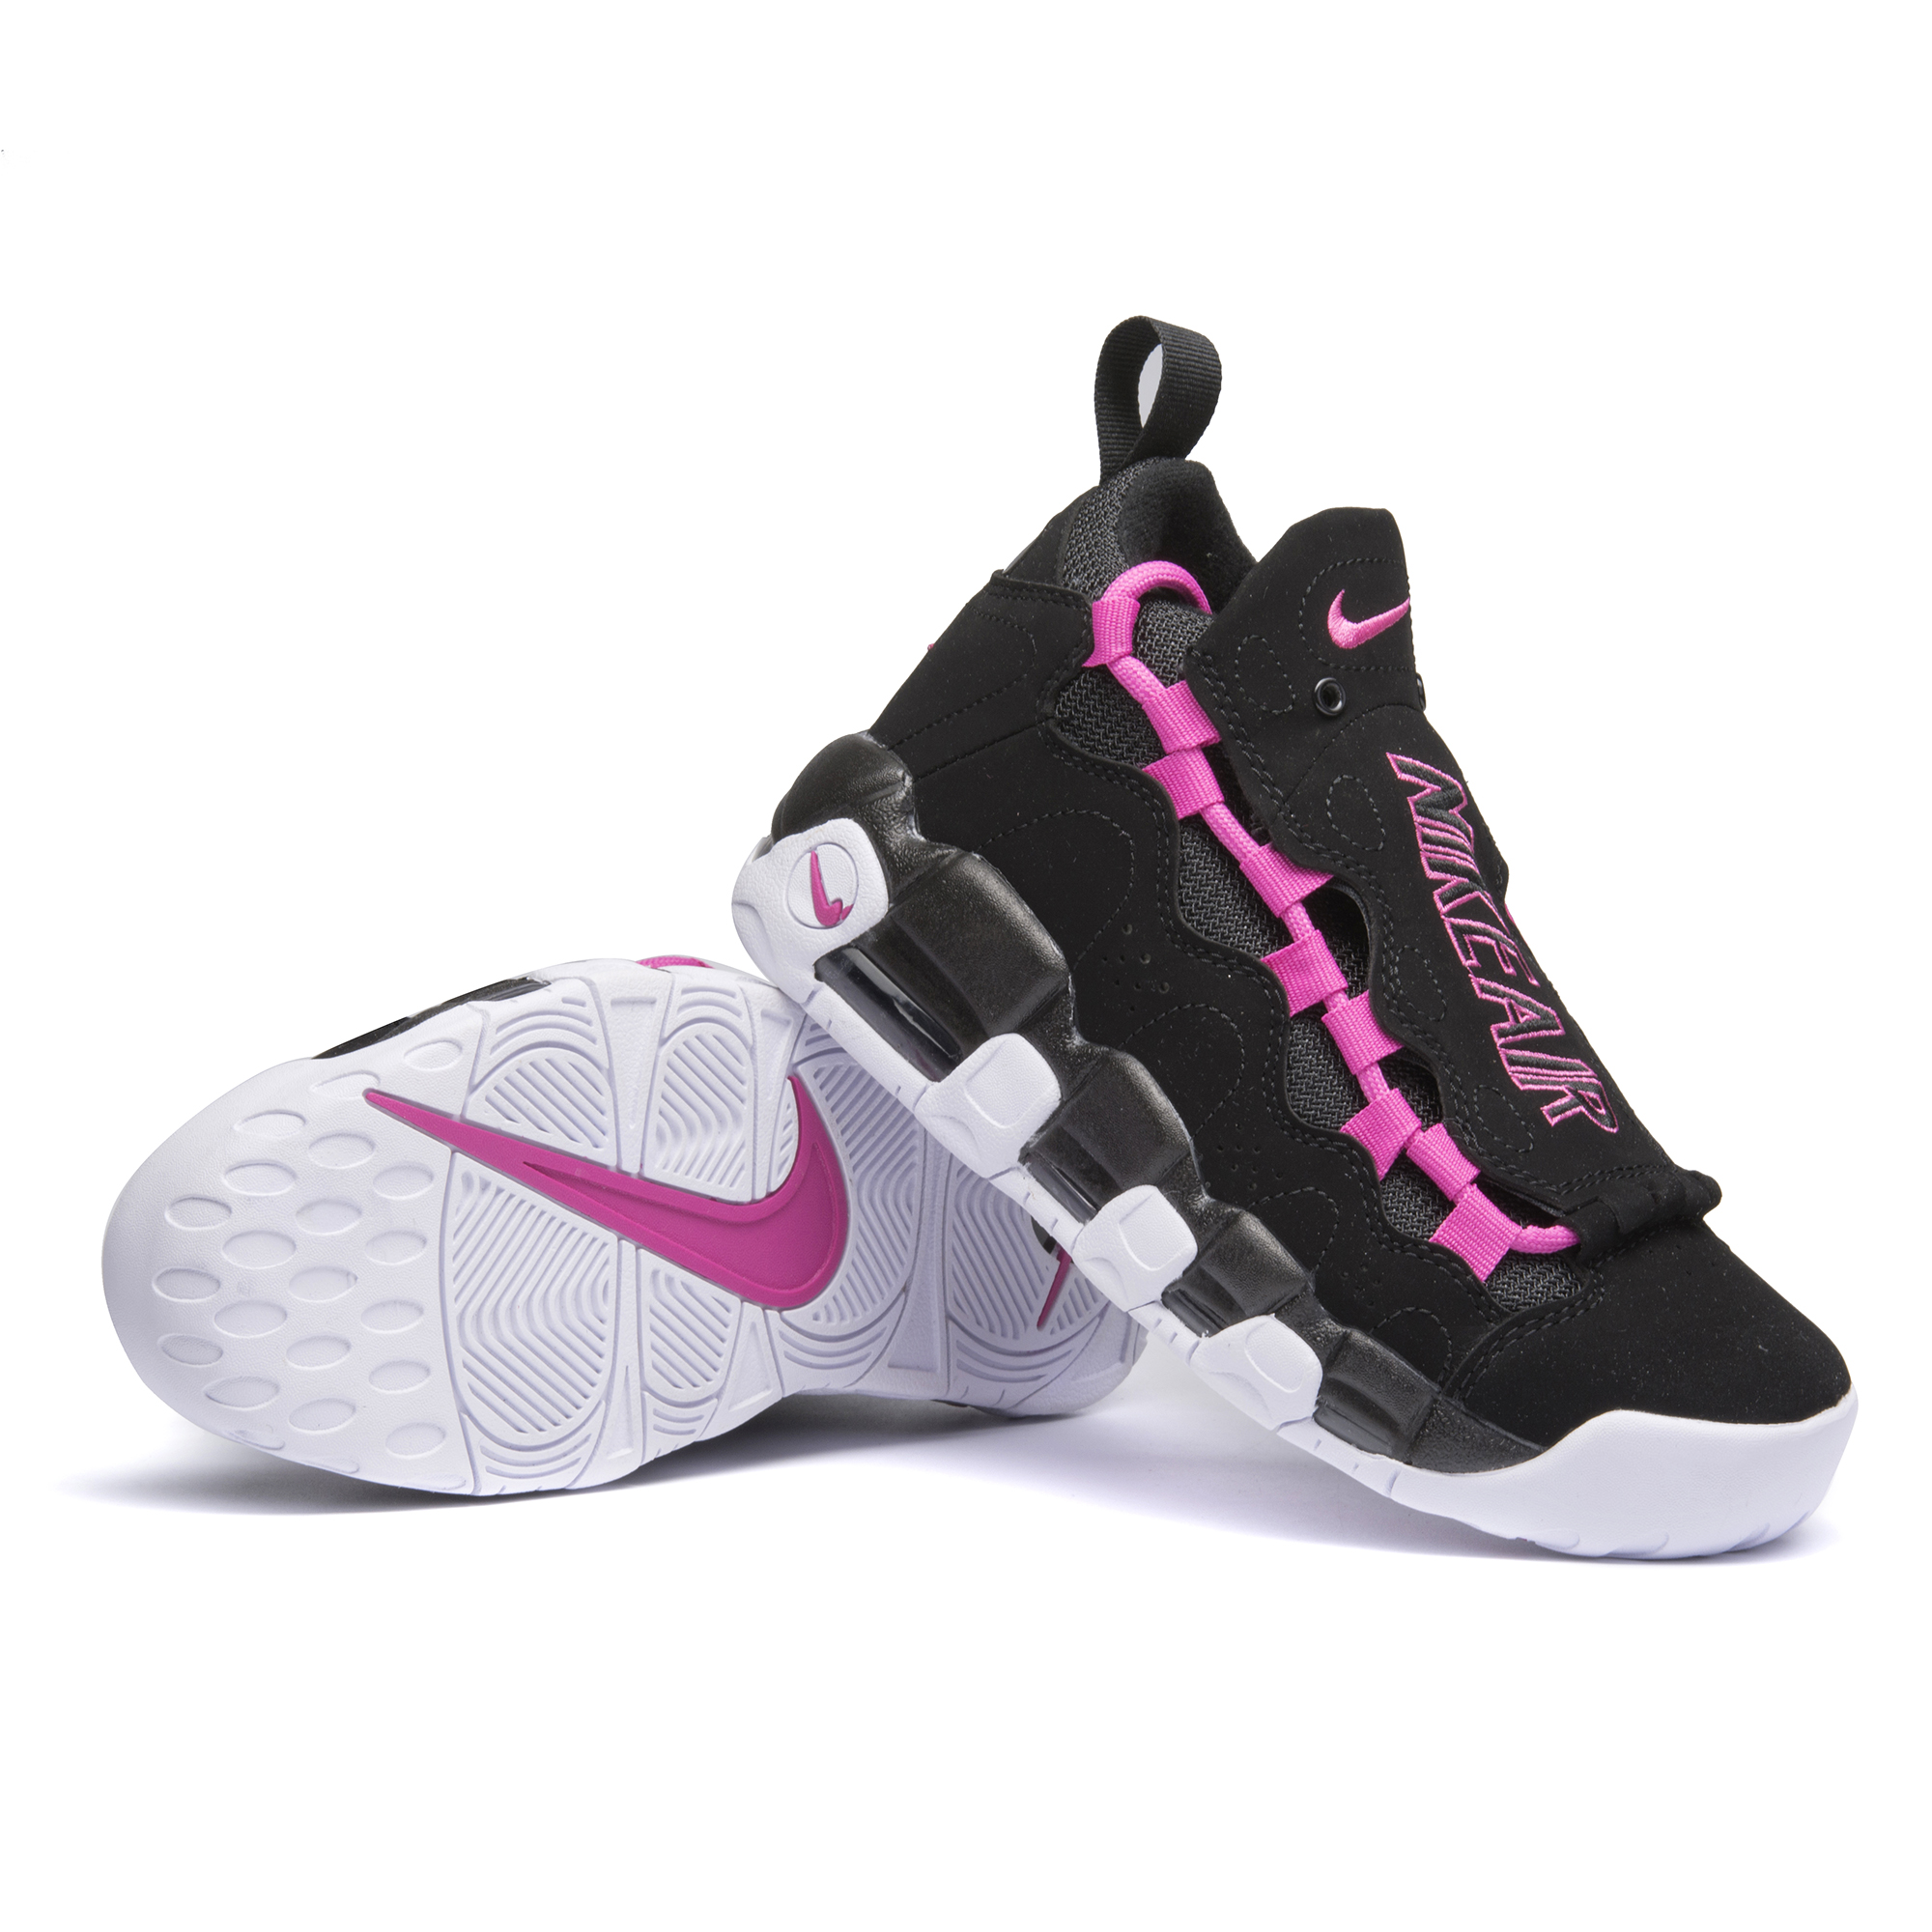 Nike Air More Money QS Black Peach Shoes